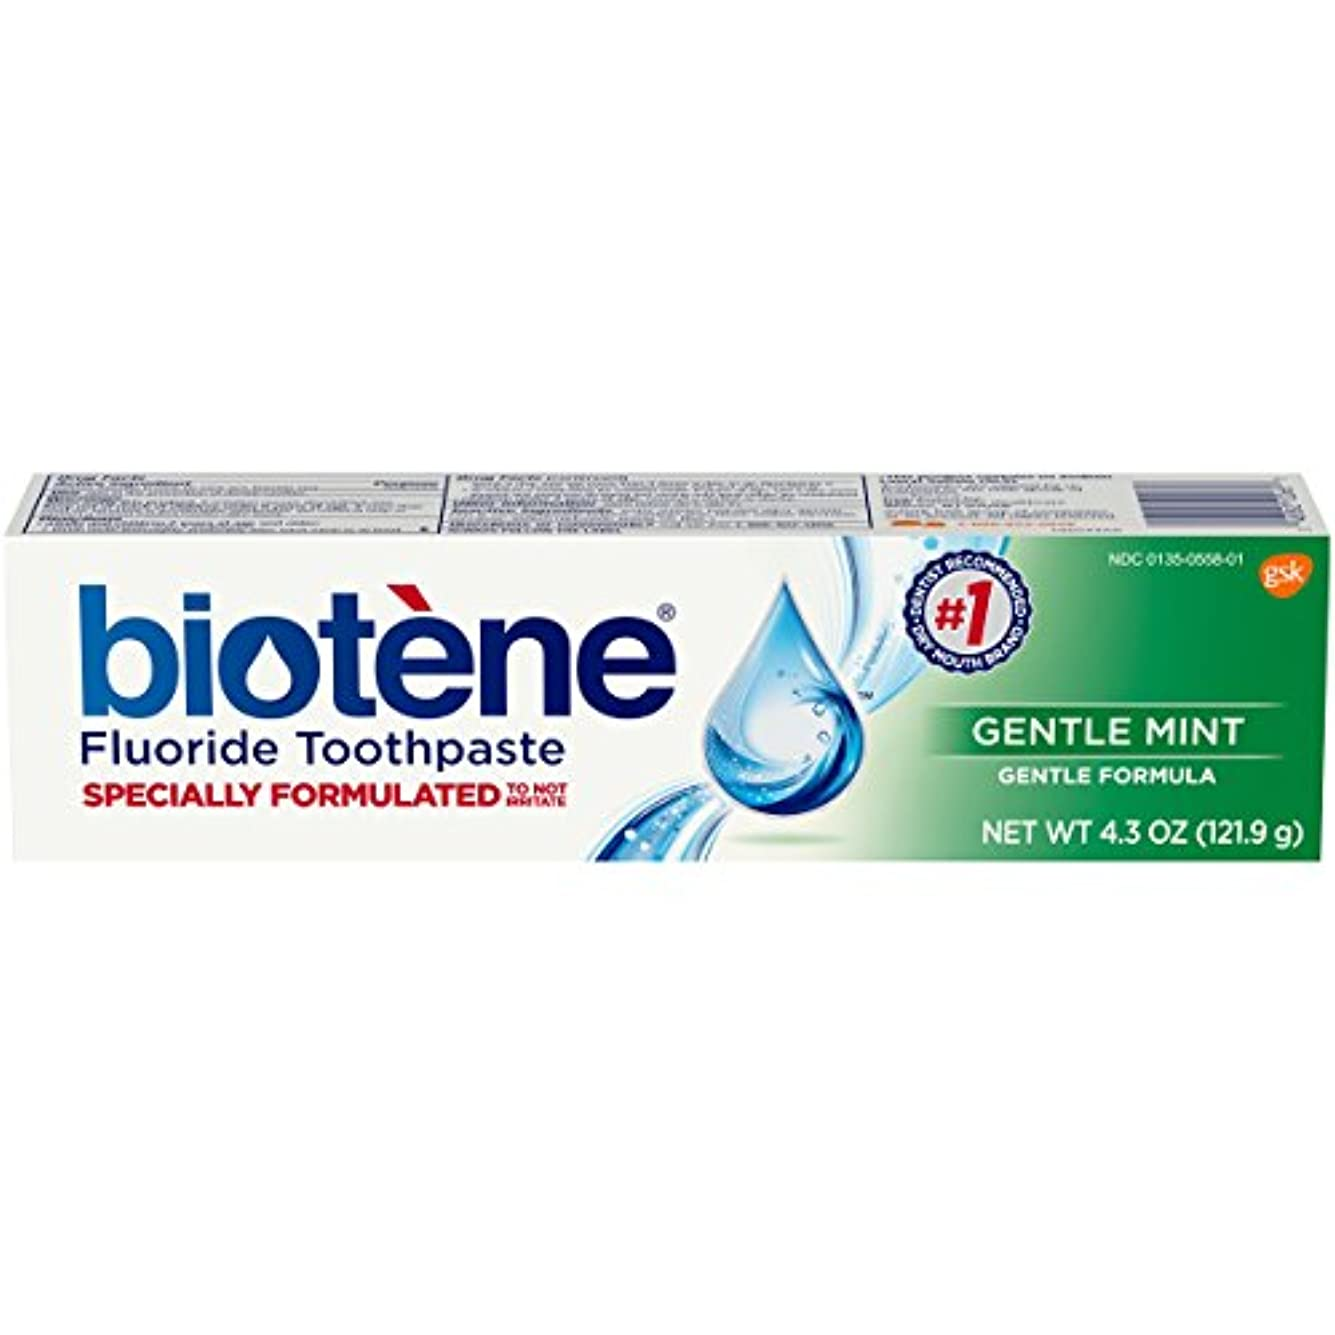 Biotene Toothpaste Gentle Mint Fluoride 4.3 Oz, by Biotene